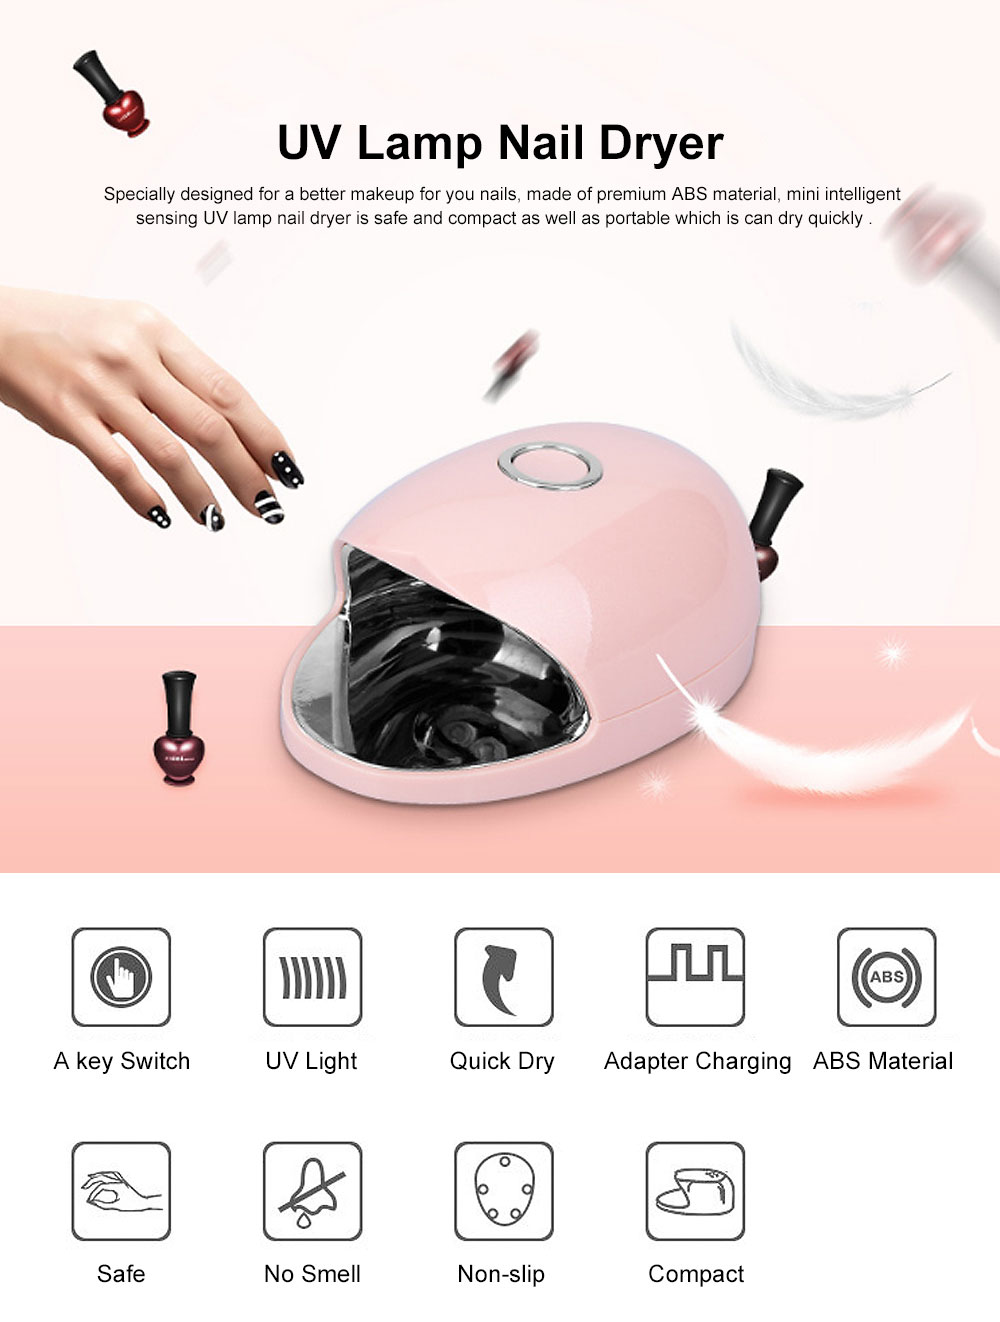 Intelligent Sensing UV Lamp Nail Dryer with Non- slip Design & Fast Drying Function Design 0